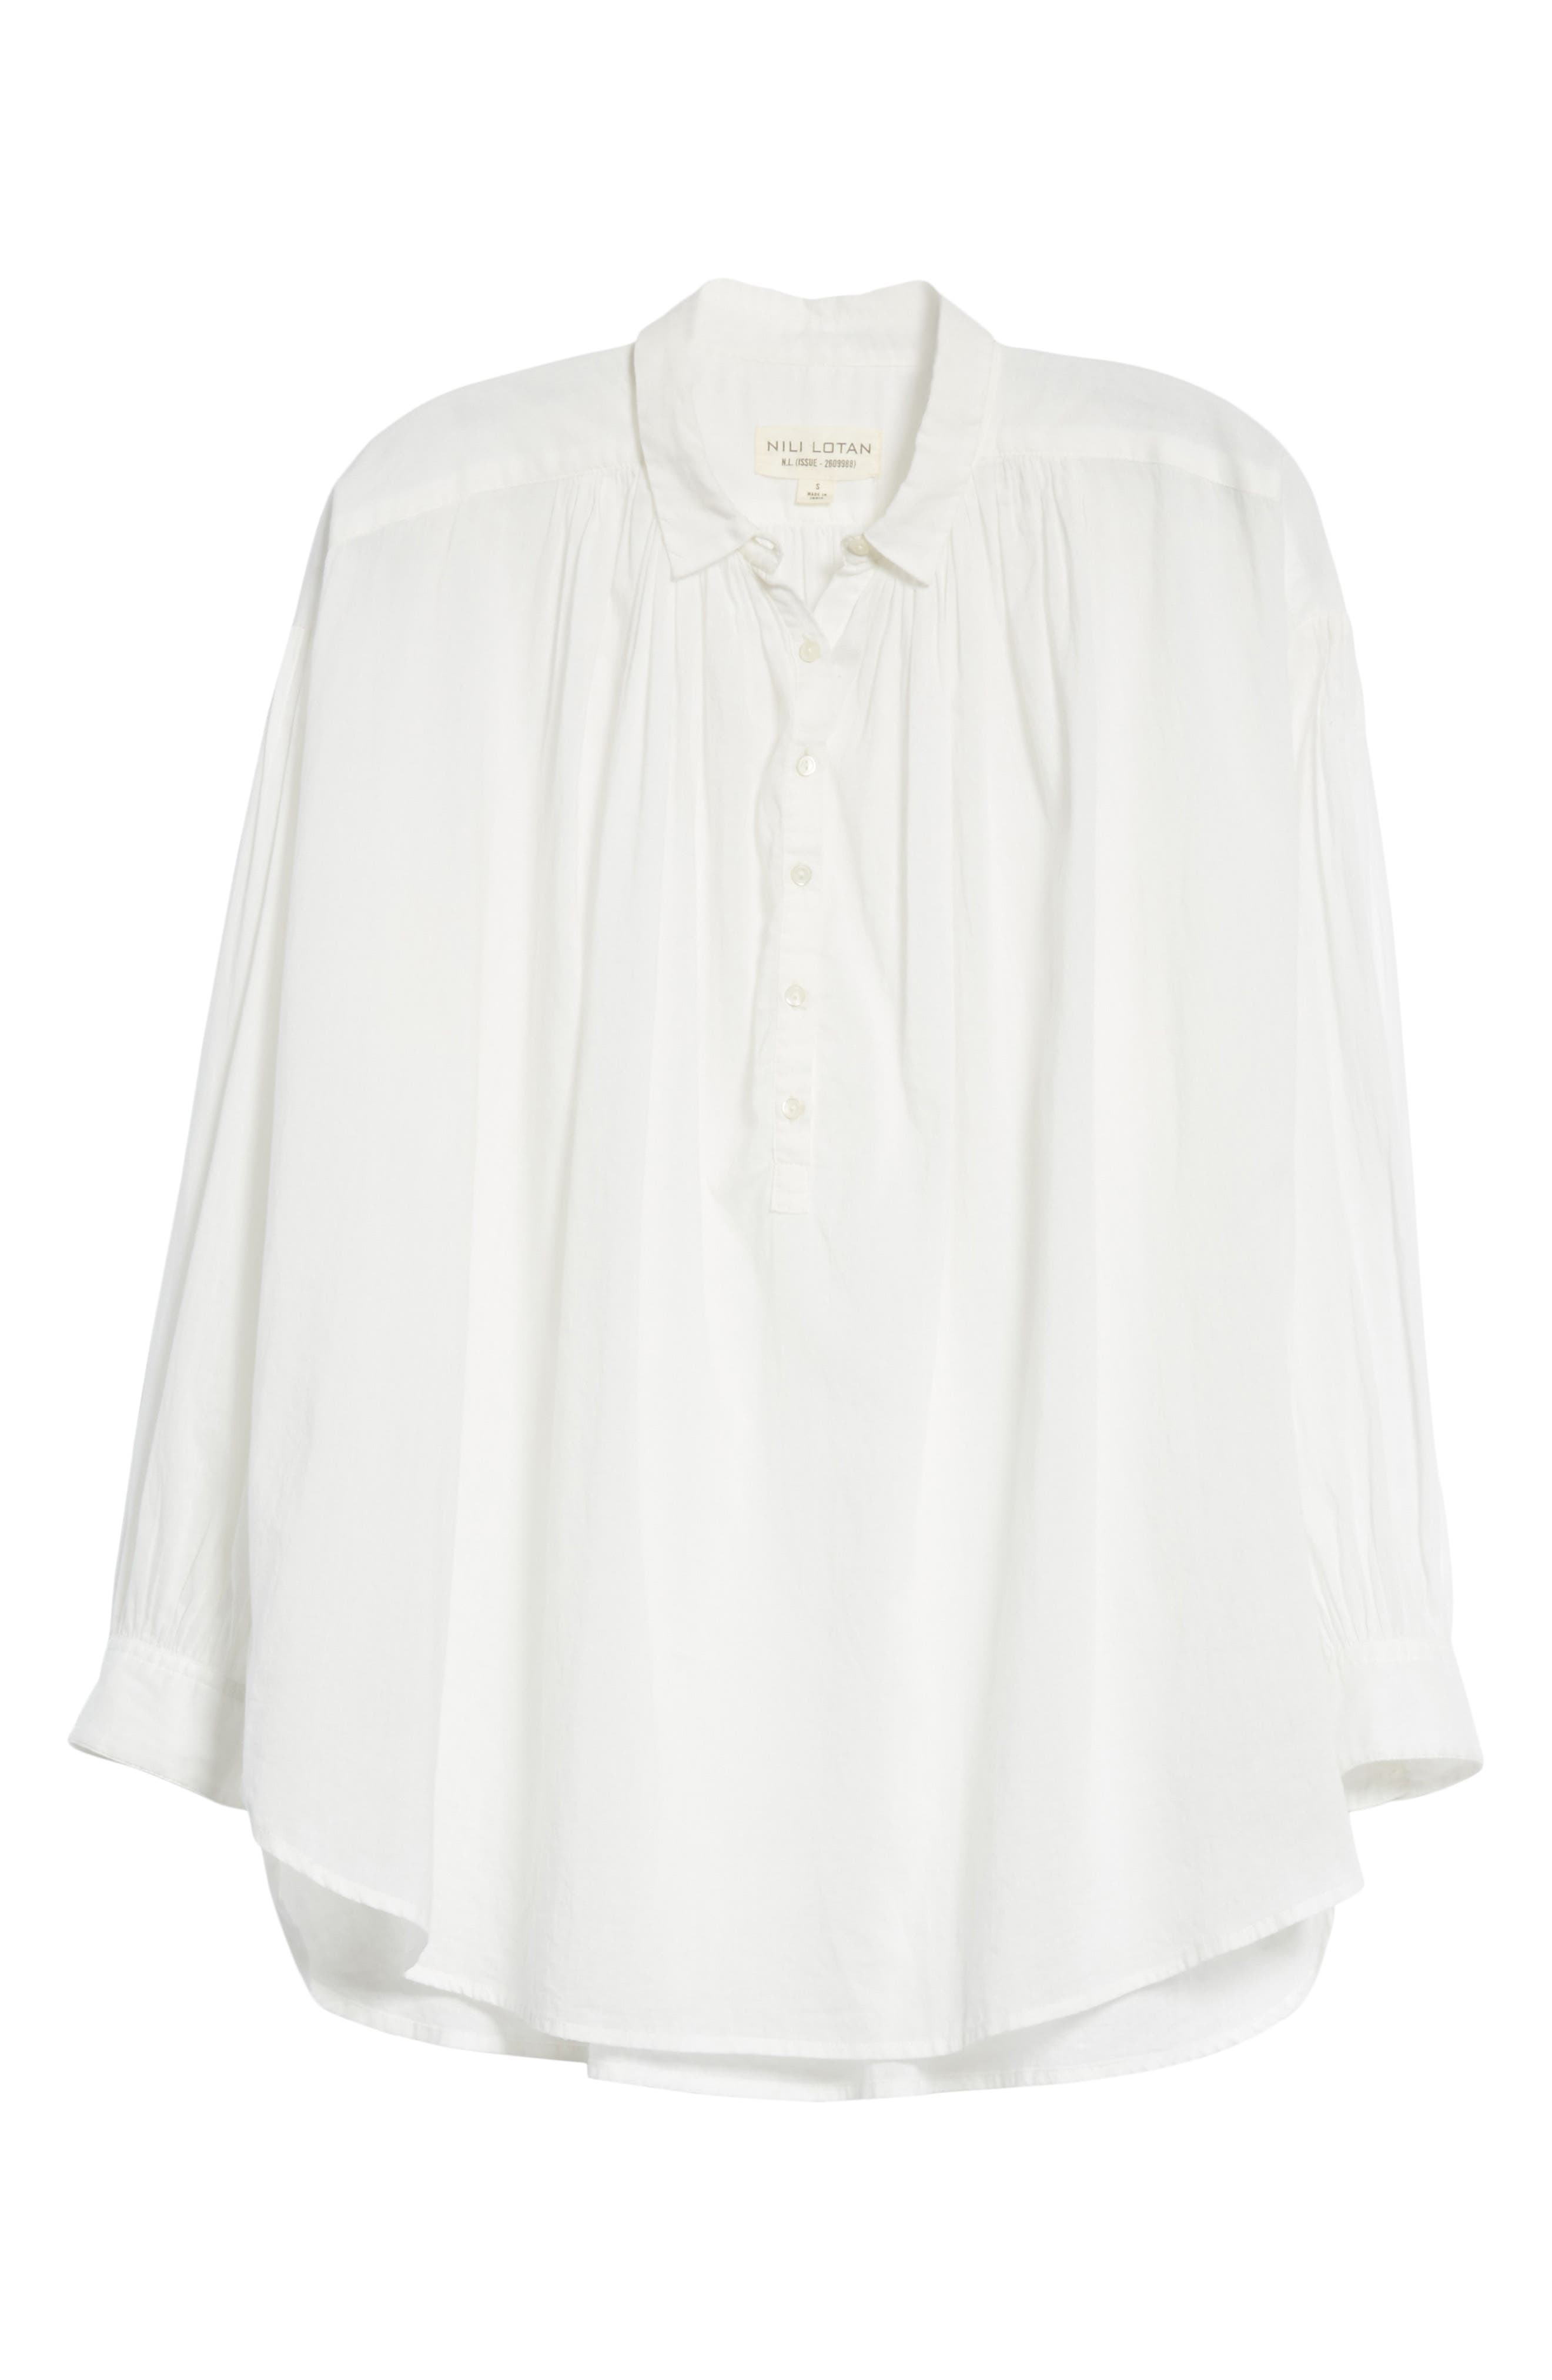 Miles Gathered Yoke Blouse,                             Alternate thumbnail 6, color,                             902